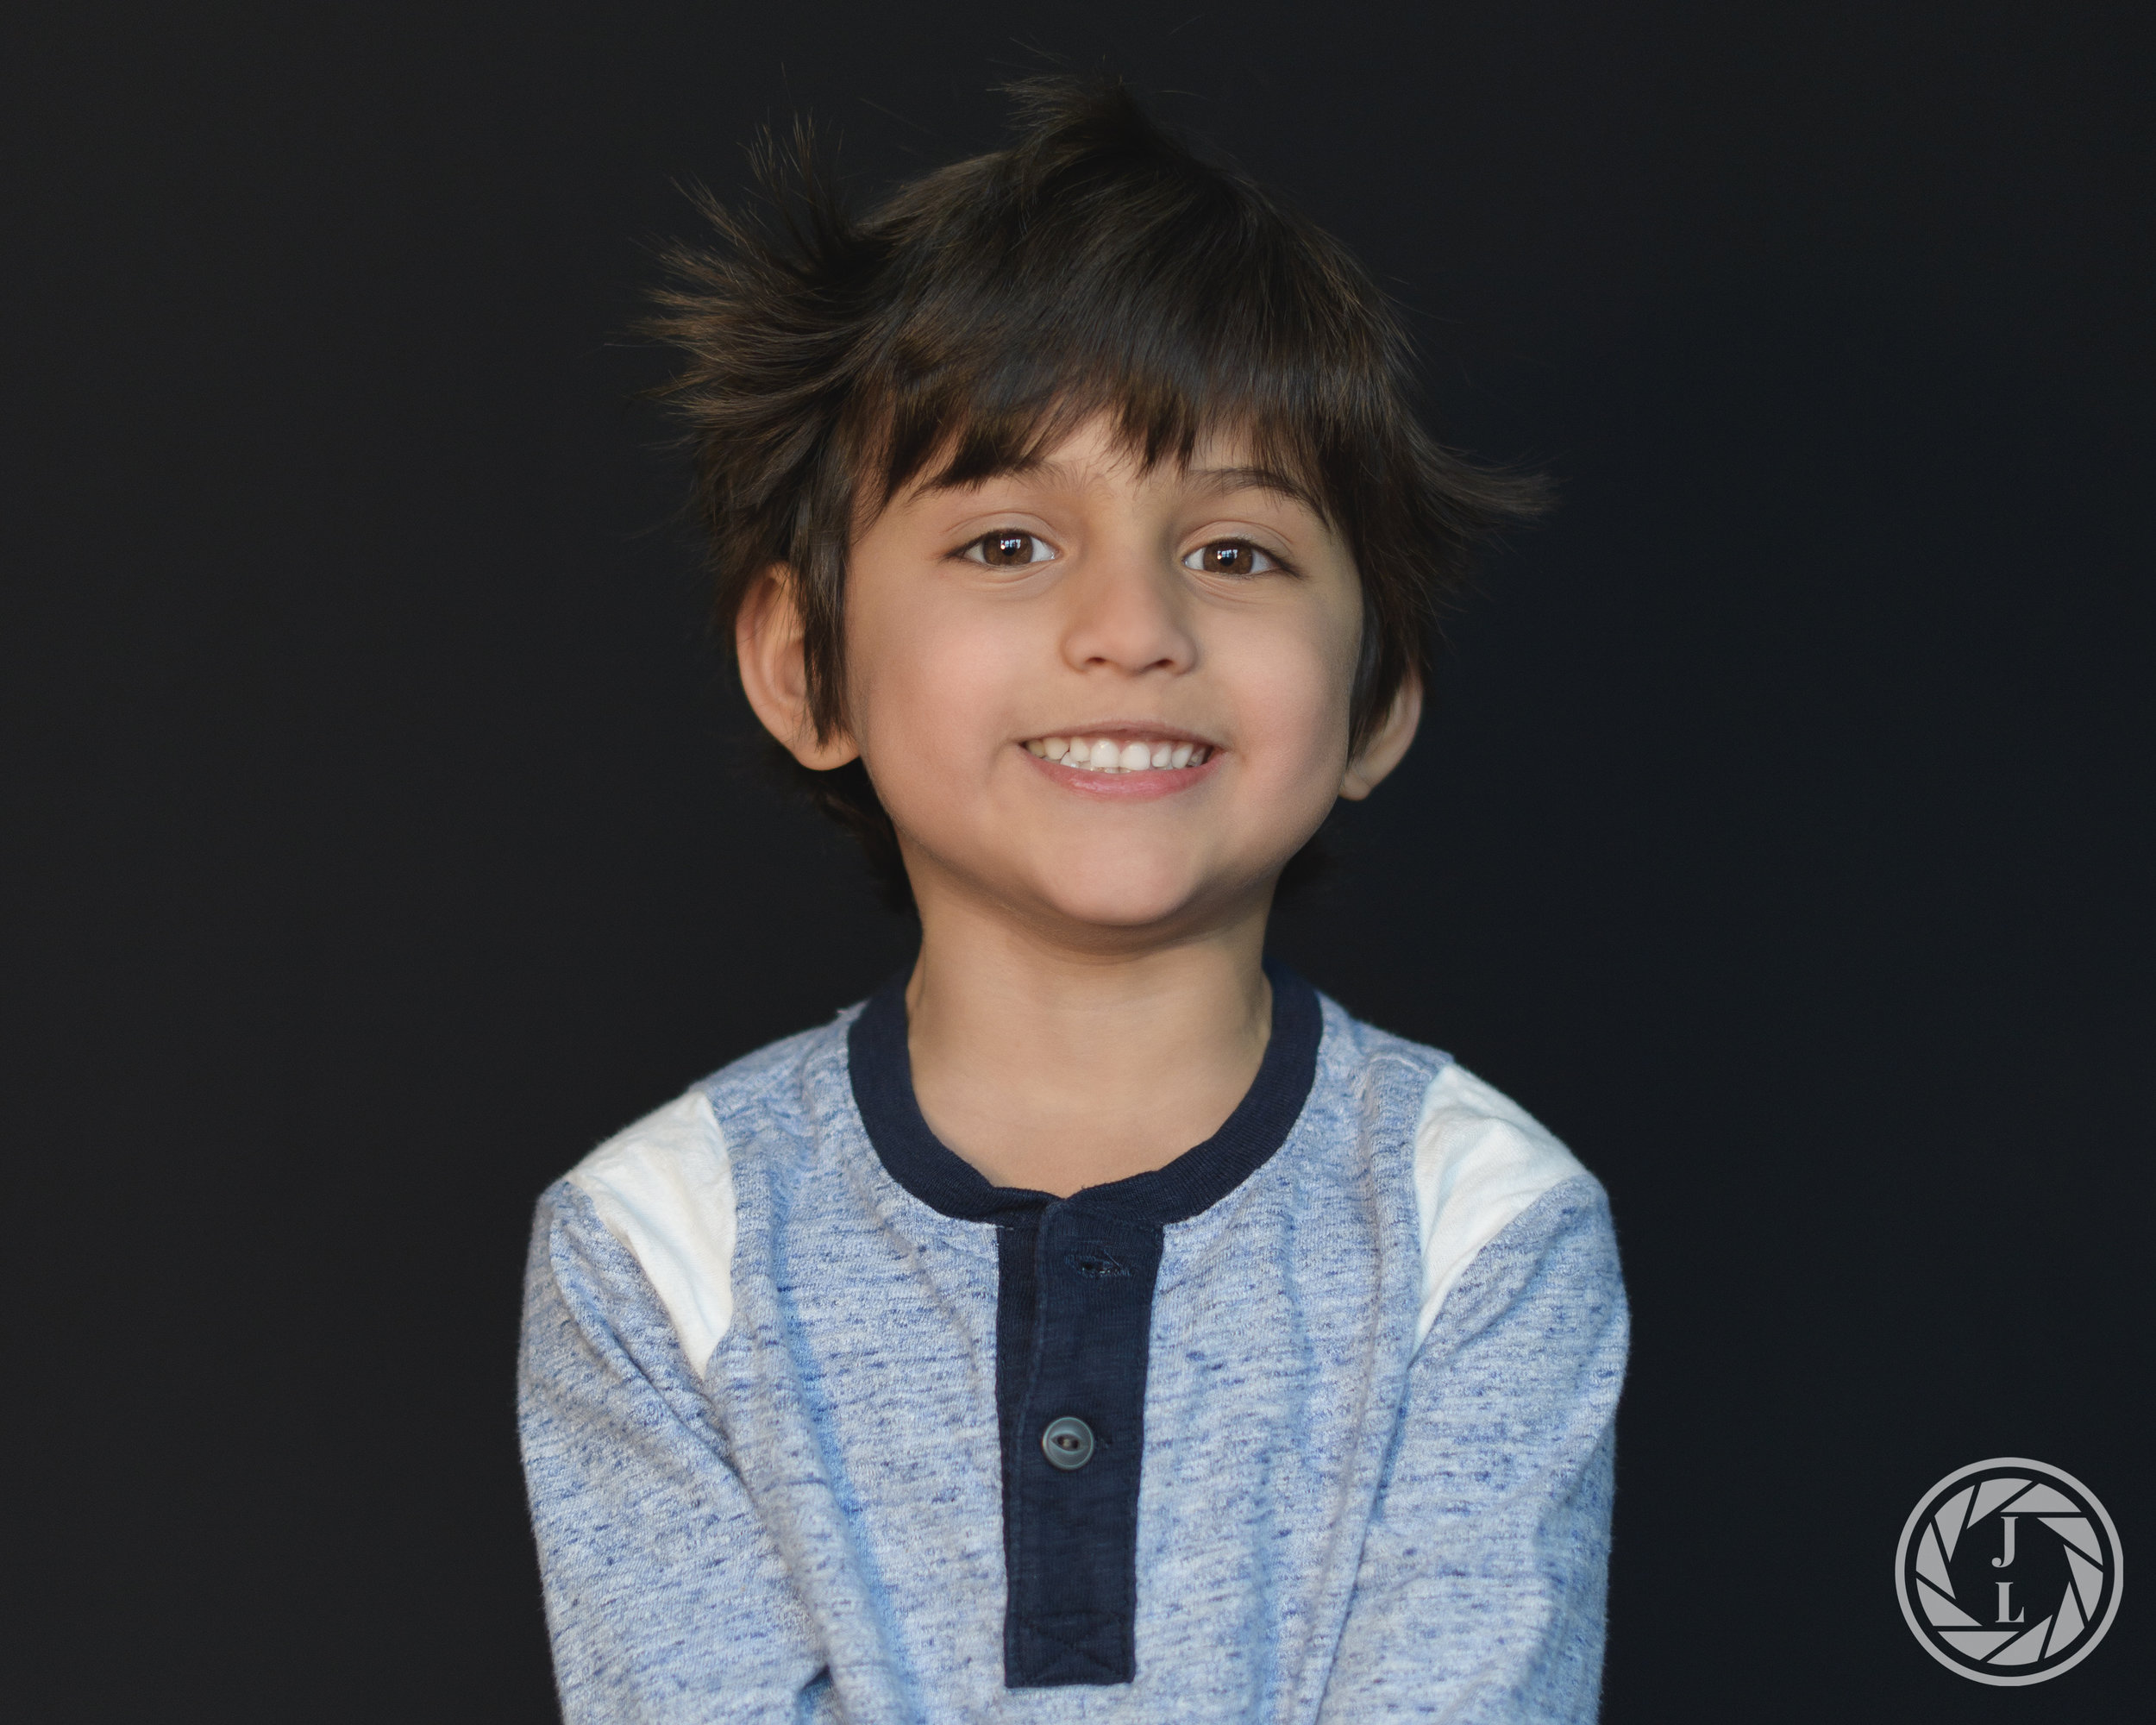 A happy, toddler smiling and looking towards the camera with messy hair.